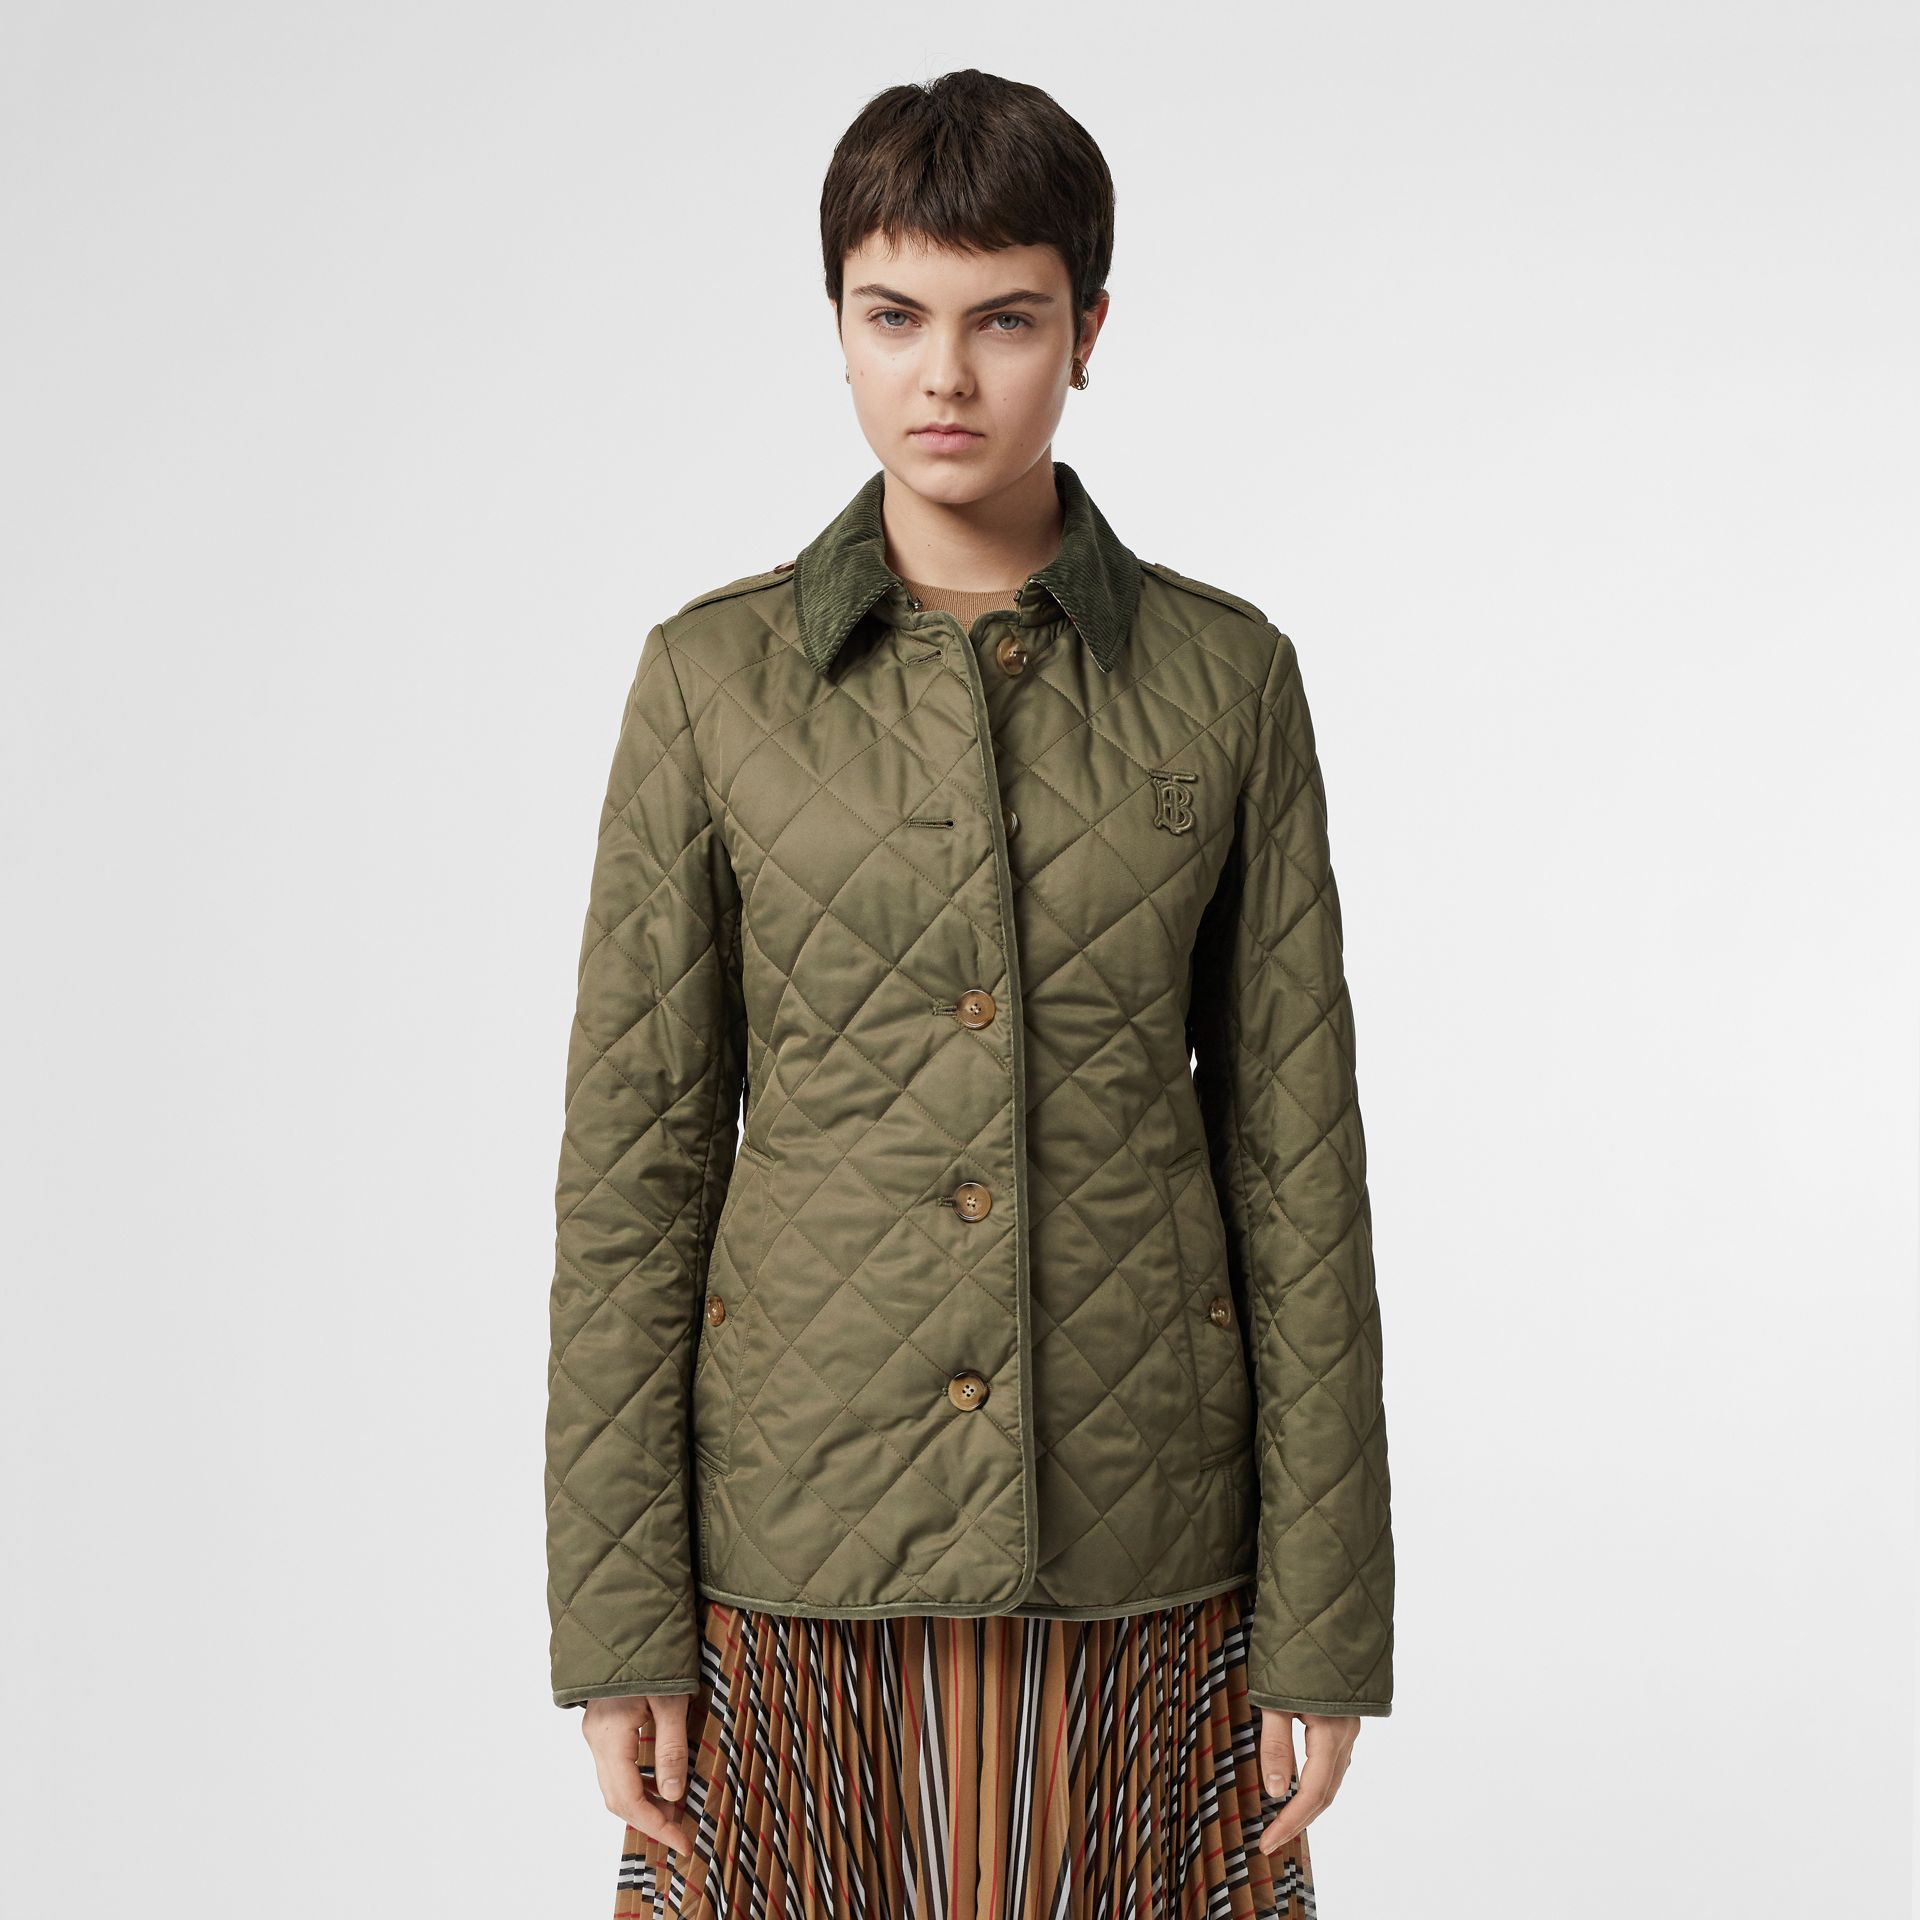 Monogram Motif Diamond Quilted Jacket in Olive Green - Women | Burberry - gallery image 3